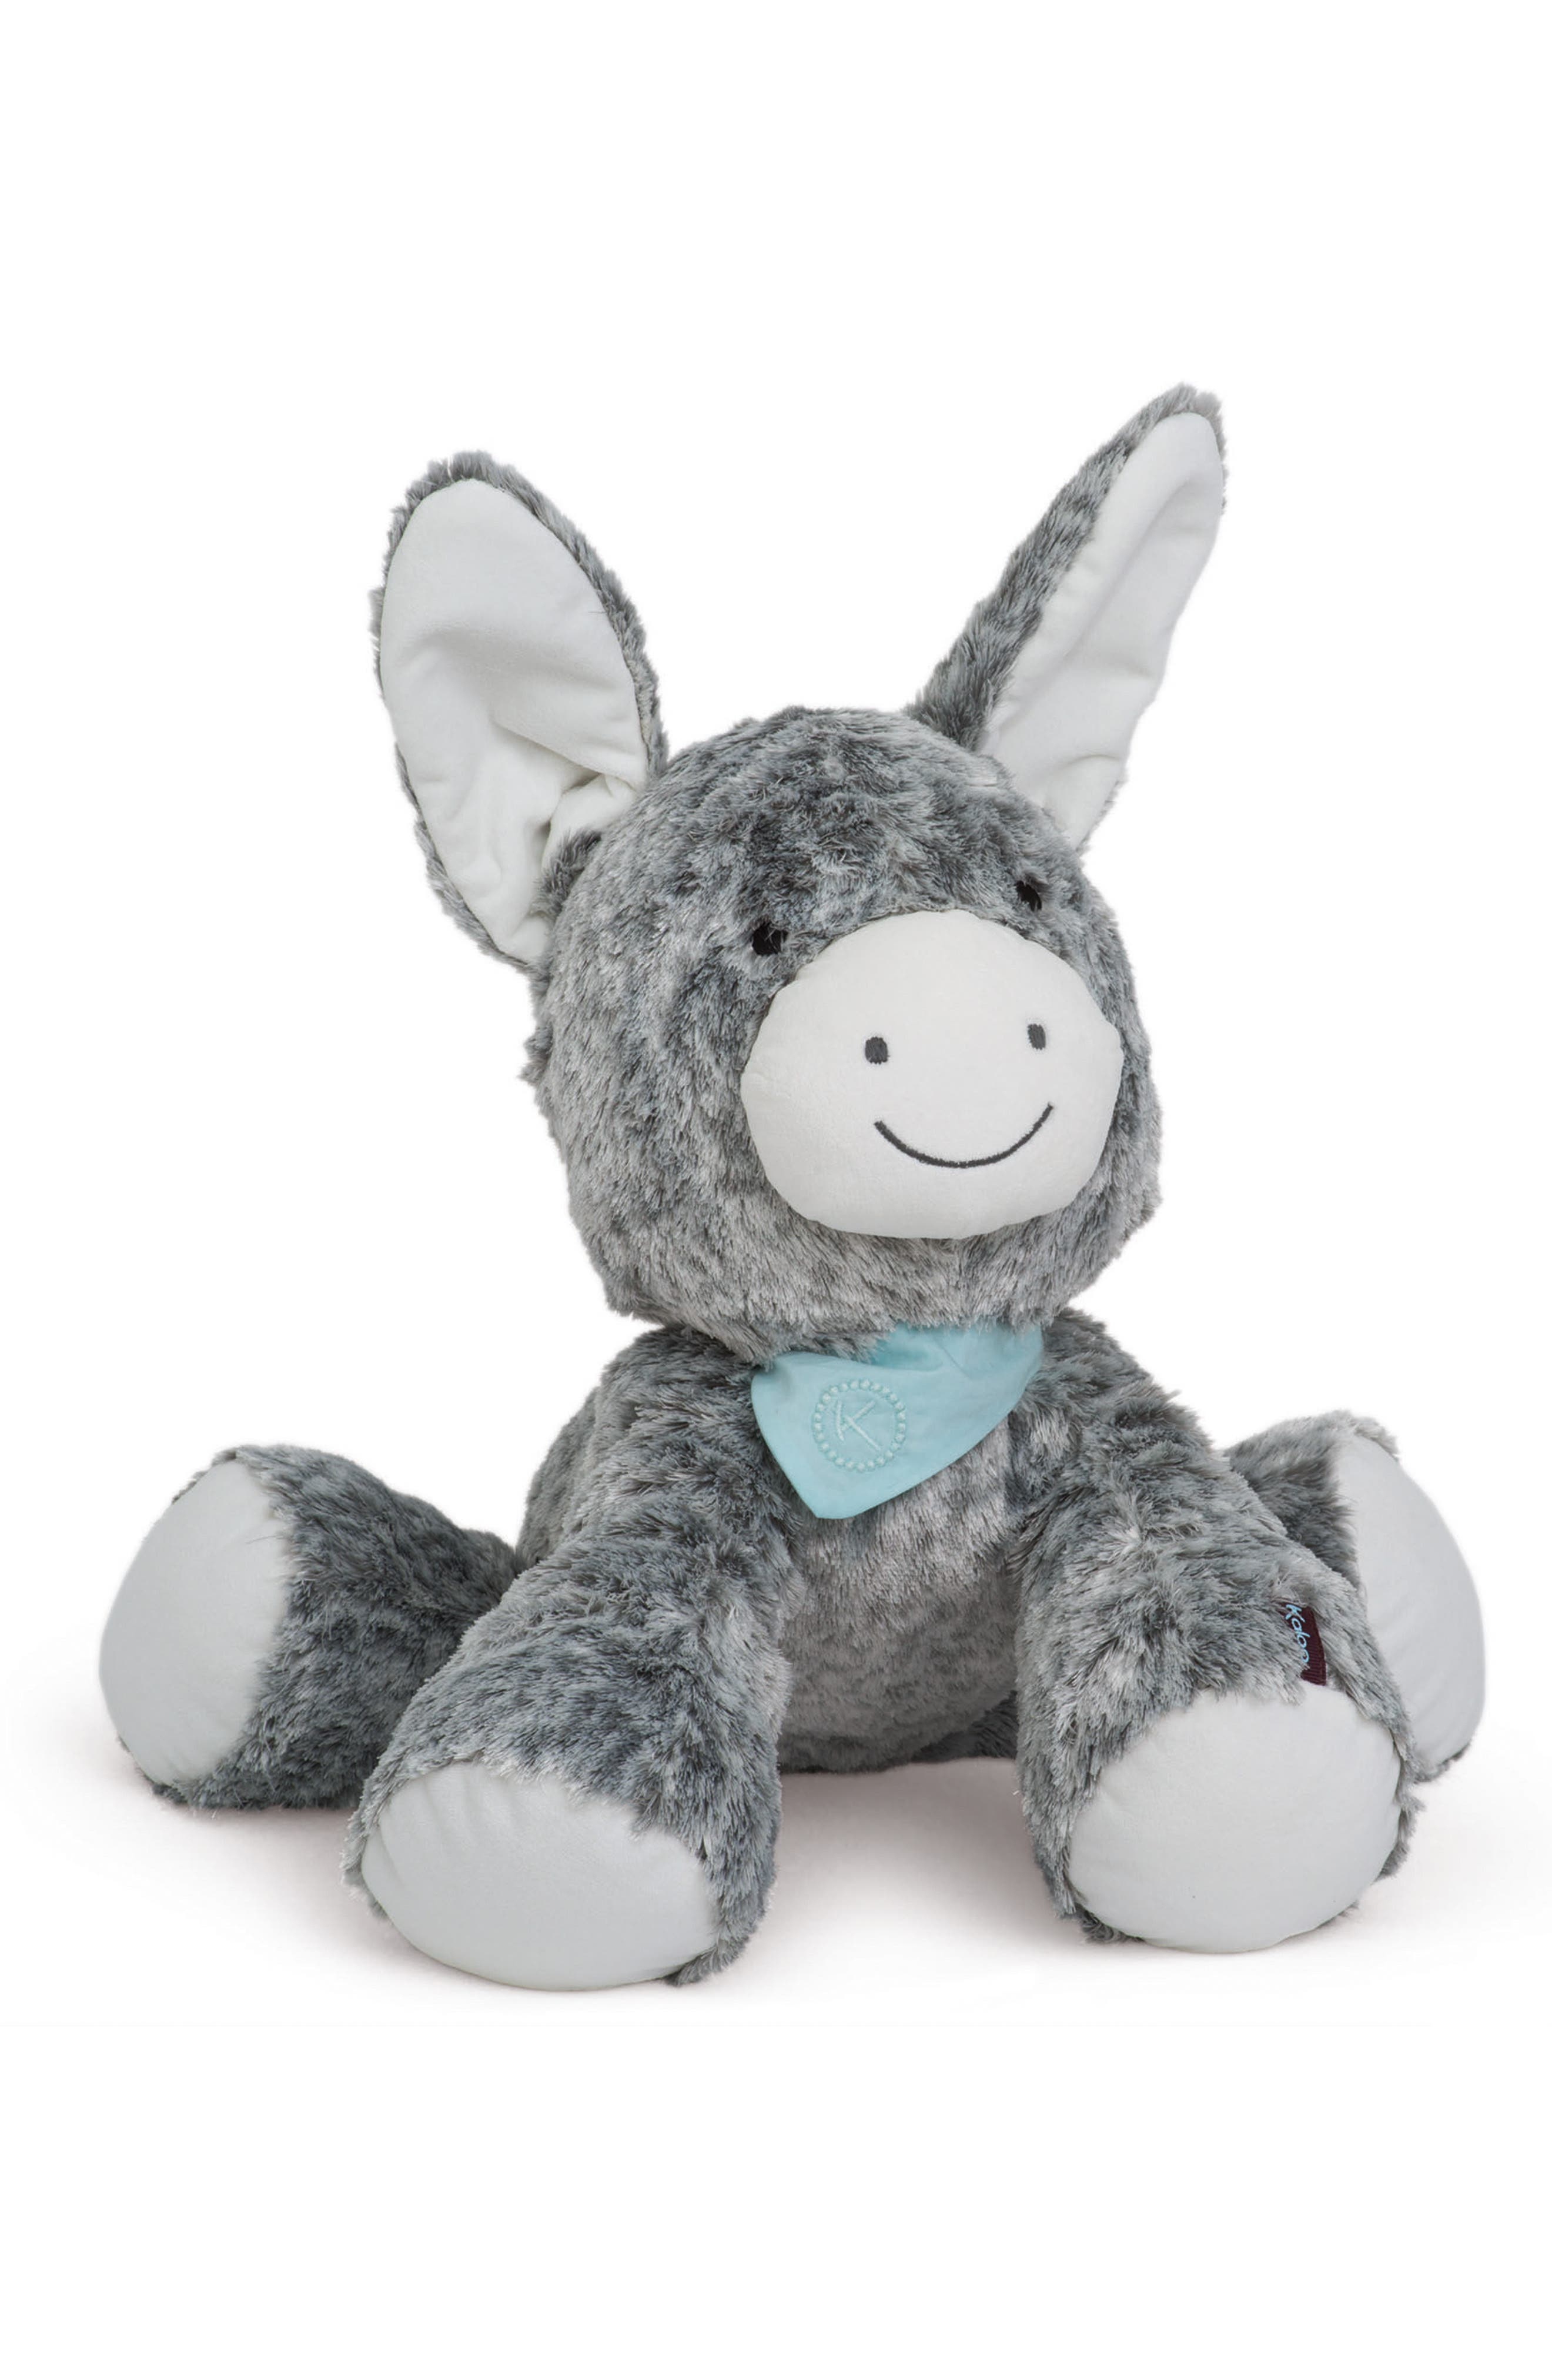 Regliss the Donkey Stuffed Animal,                             Main thumbnail 1, color,                             Grey